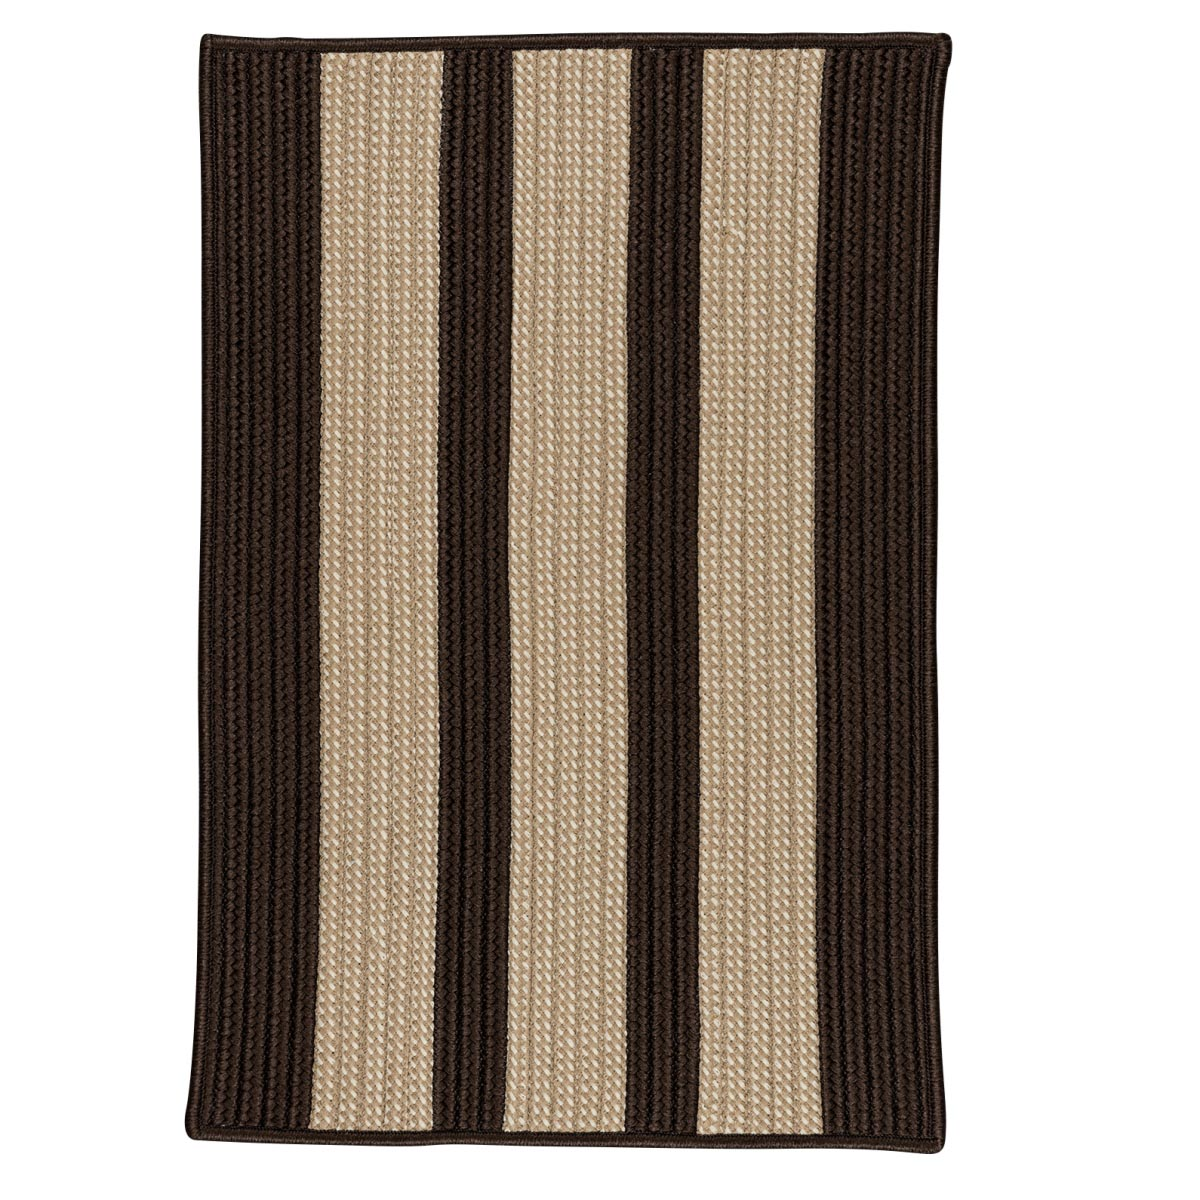 Boat House Brown Outdoor Braided Rectangular Rugs